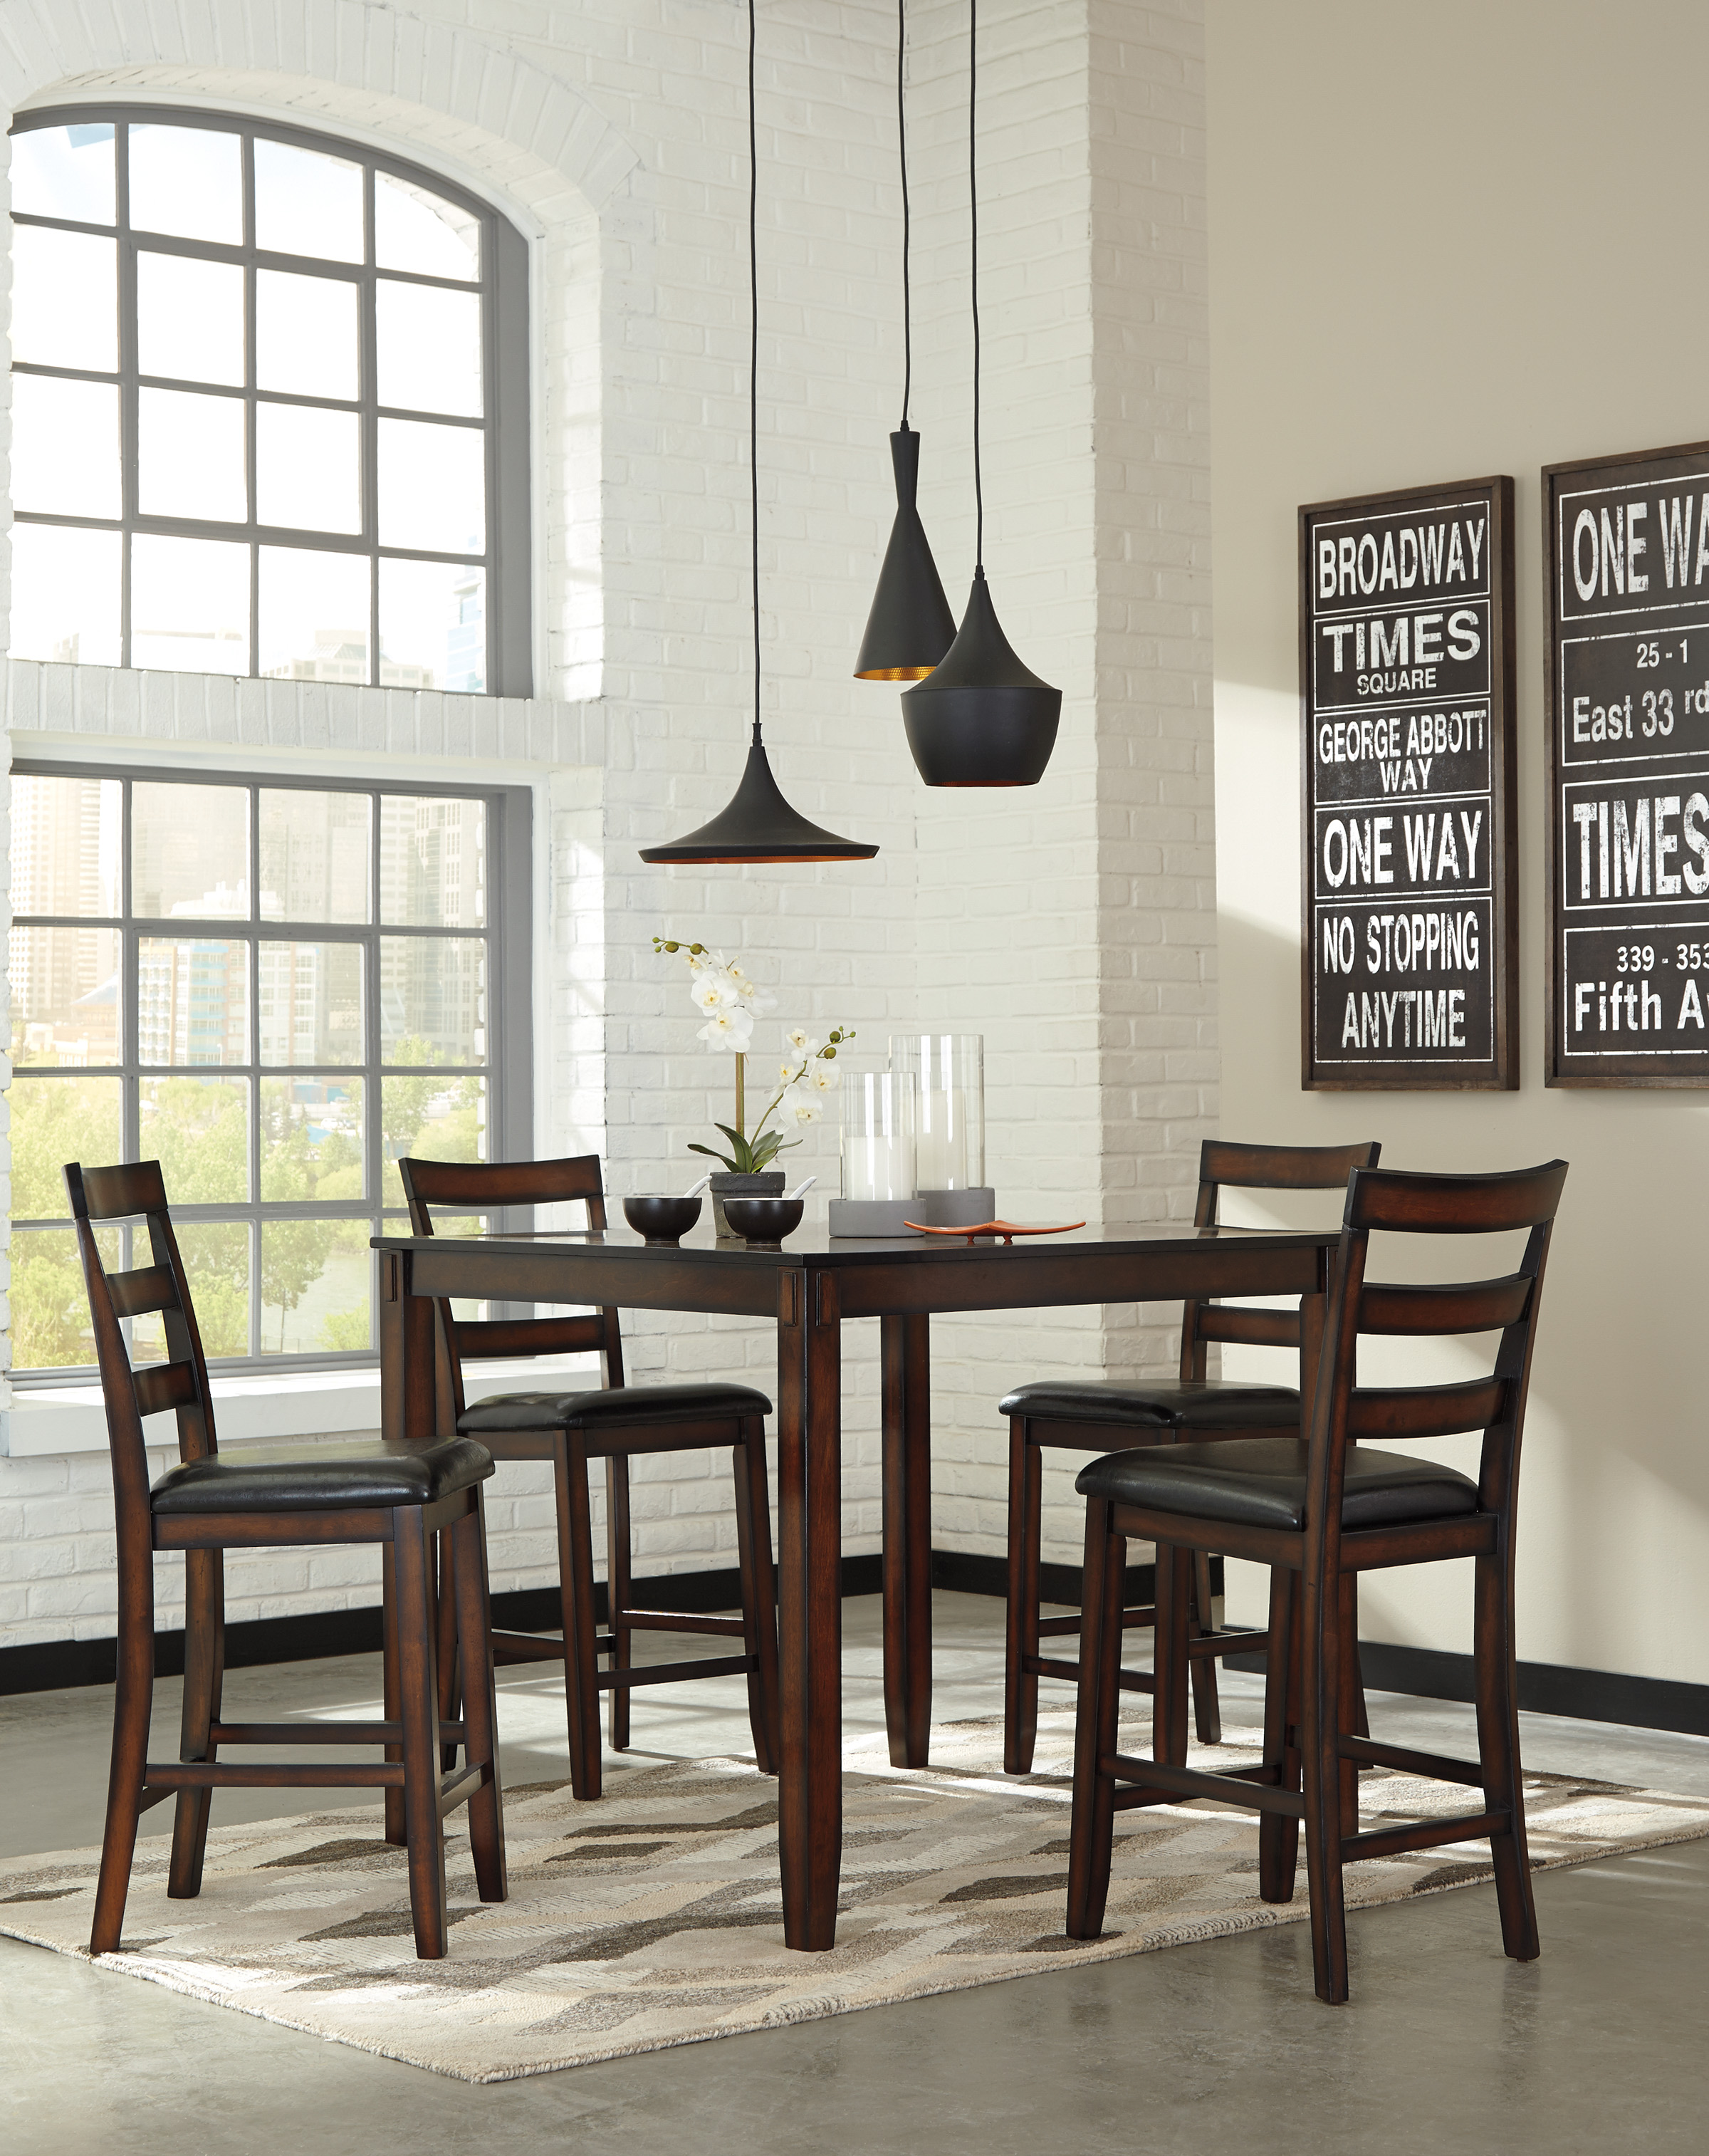 Coviar Counter Dining Room Table and Four Chairs  / $14.99 A Week